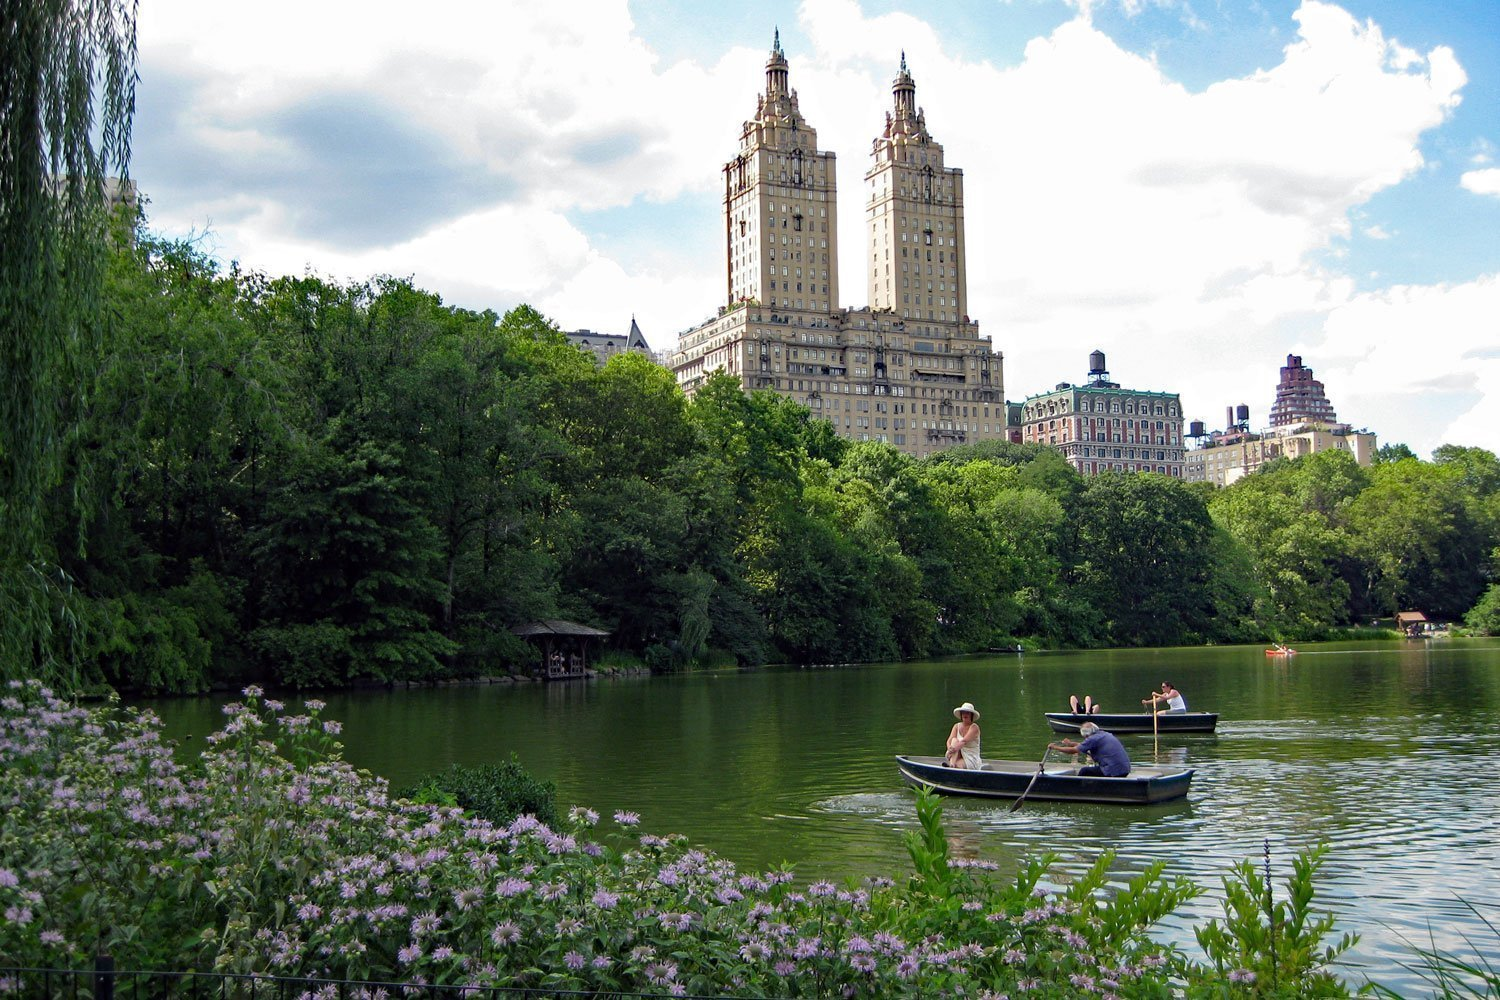 Rowers on Central Park pond with iconic Upper West Side buildings in the background